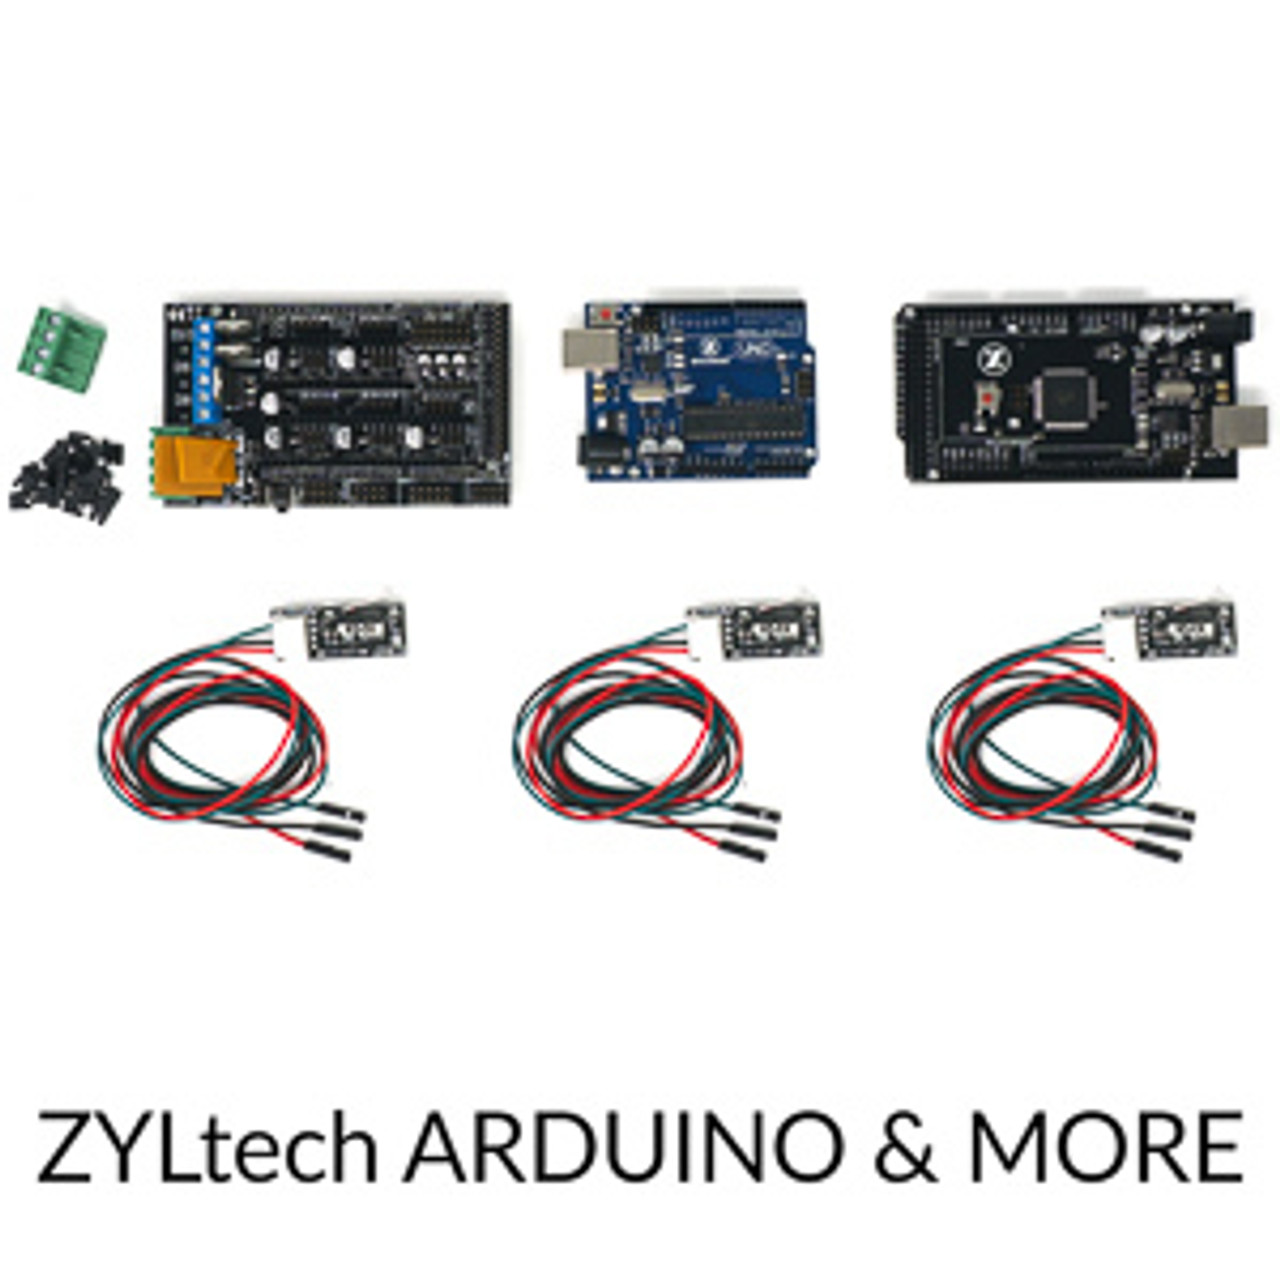 ZYLtech Arduino and more